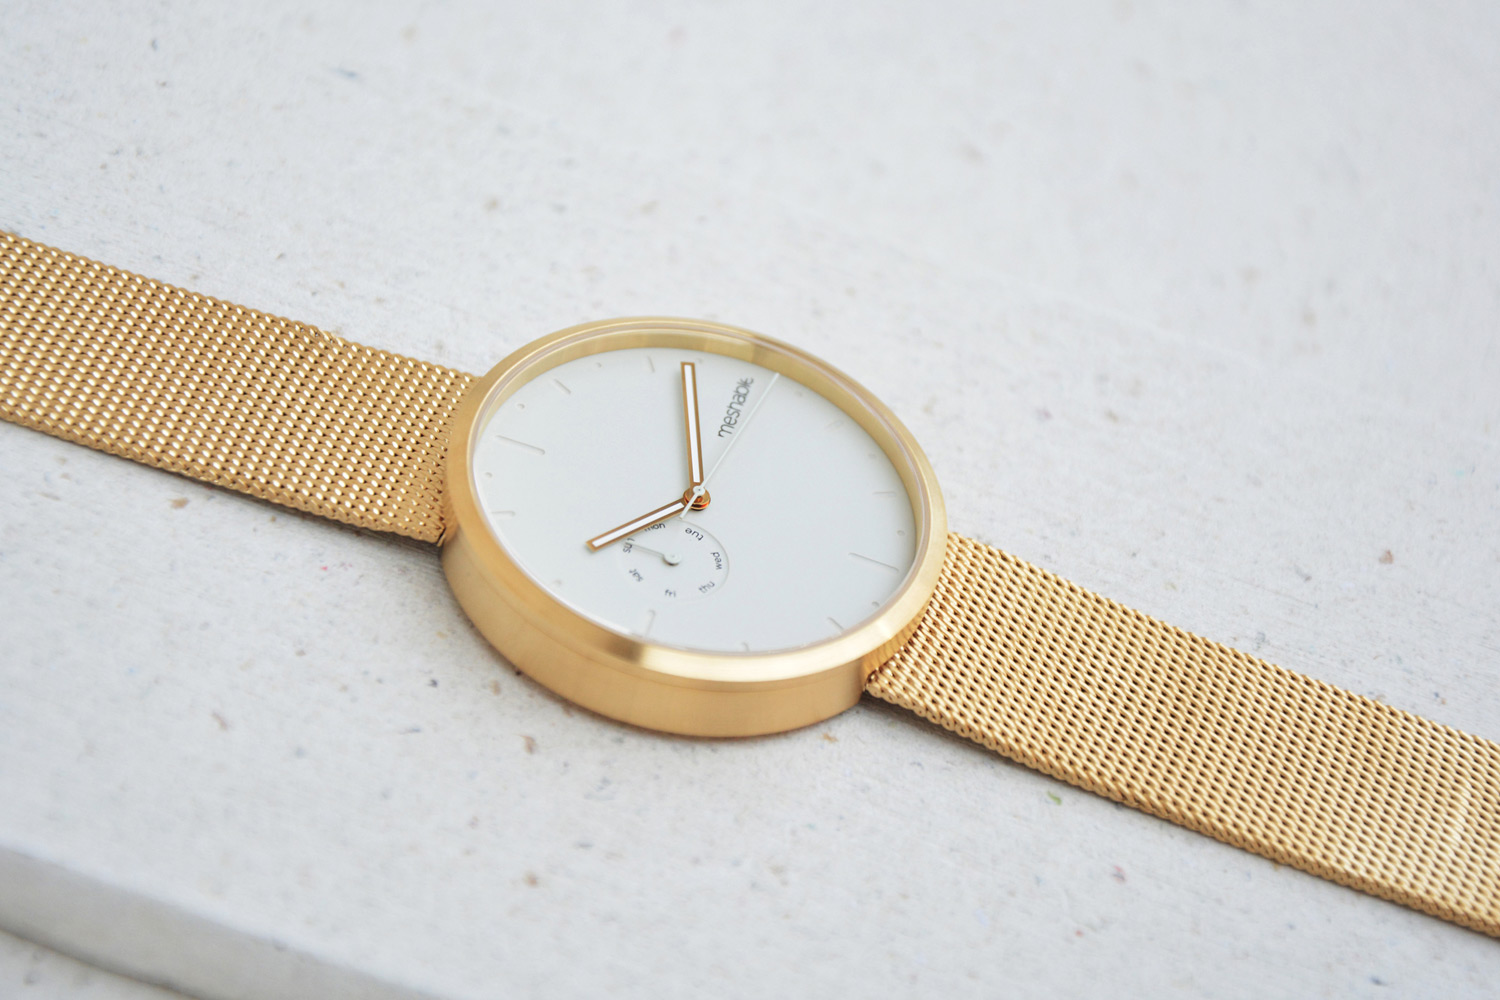 Meshable Watch Gold Colorway 2015 • Selectism. Star Shaped Earrings. Browns Wedding Rings. Circle Medallion. Golden Dial Watches. Stackable Bangle Bracelet Sets. Byzantine Bracelet. Dlc Watches. Lightweight Watches